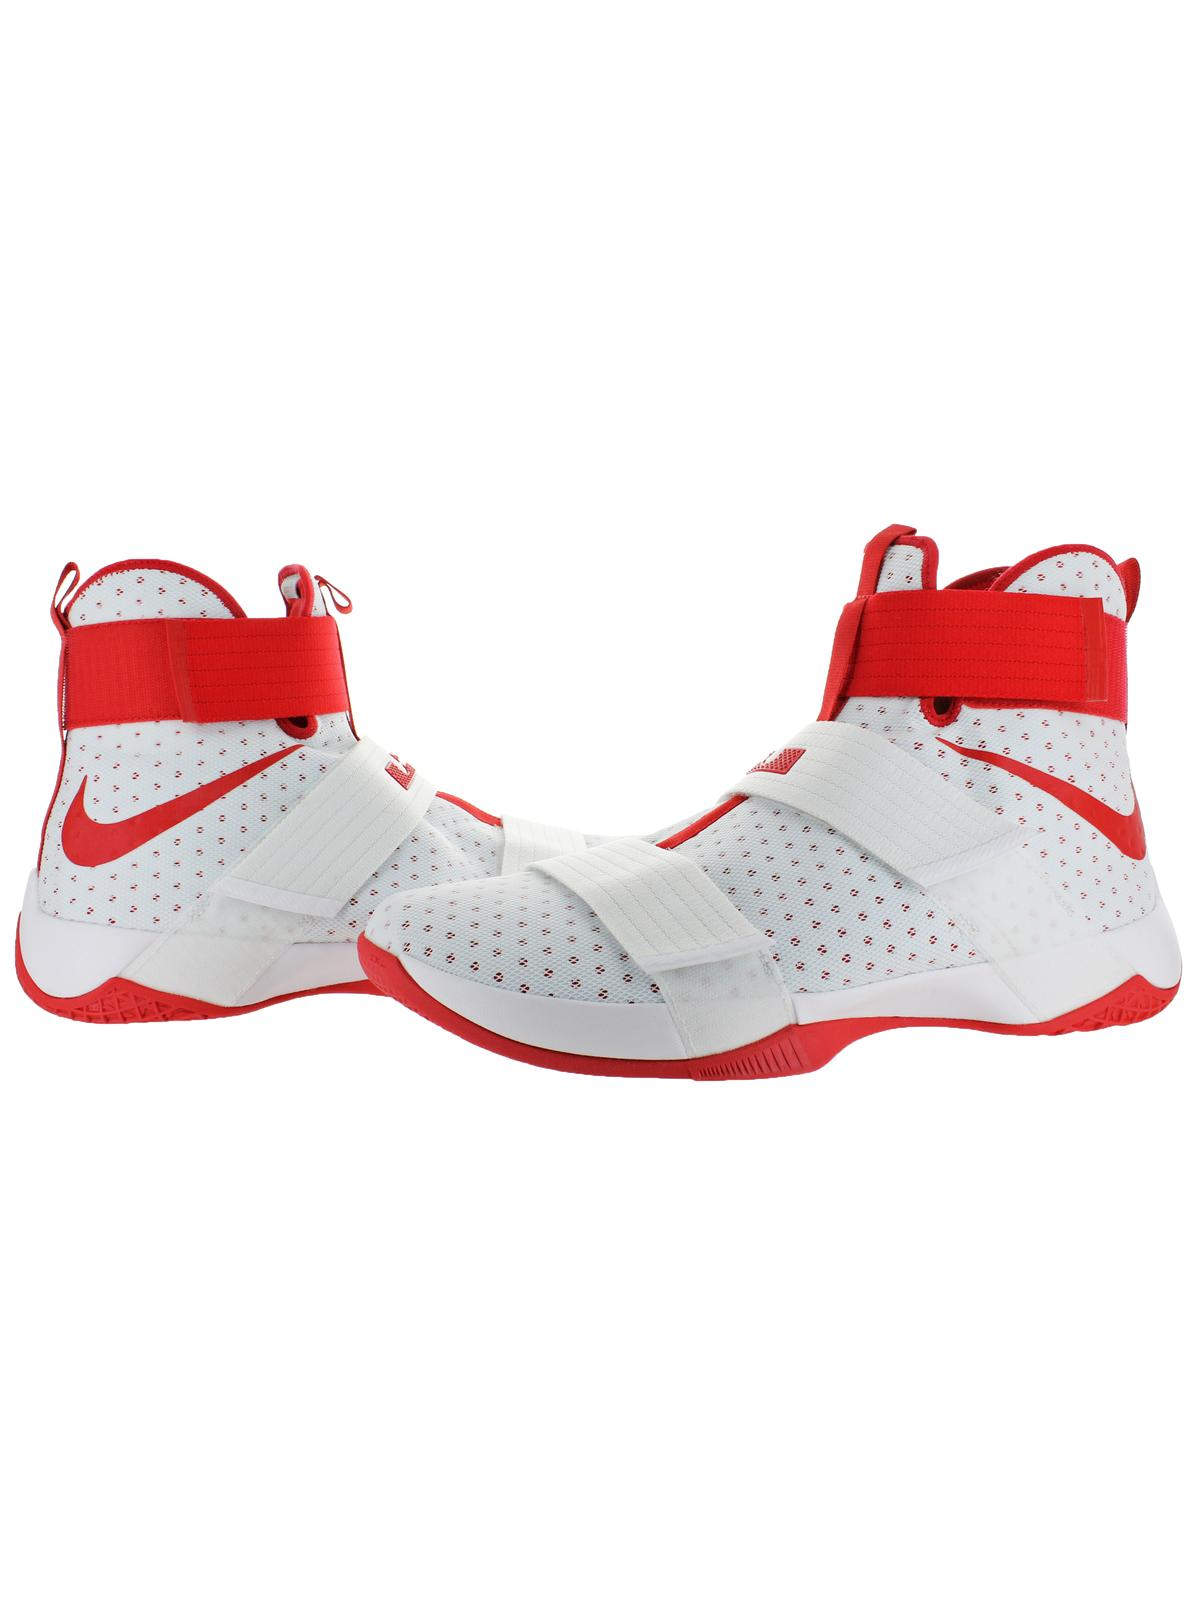 Nike LeBron Soldier 10 Men's Mesh High-Top Basketball Shoes White Size 18